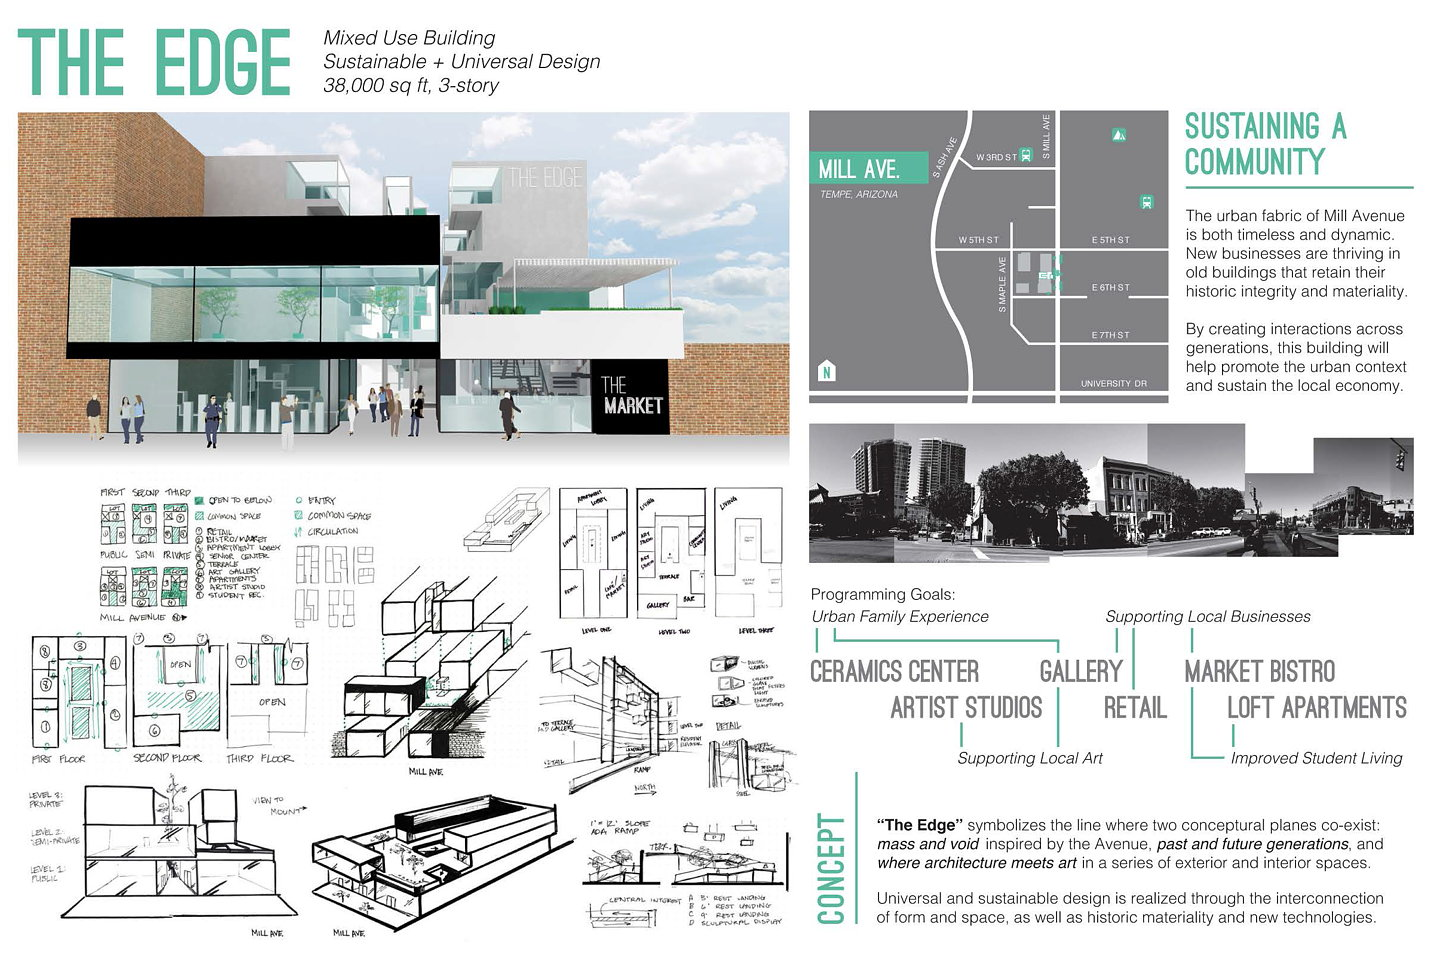 Winners Of 2013 Iida Student Sustainable Design Competition